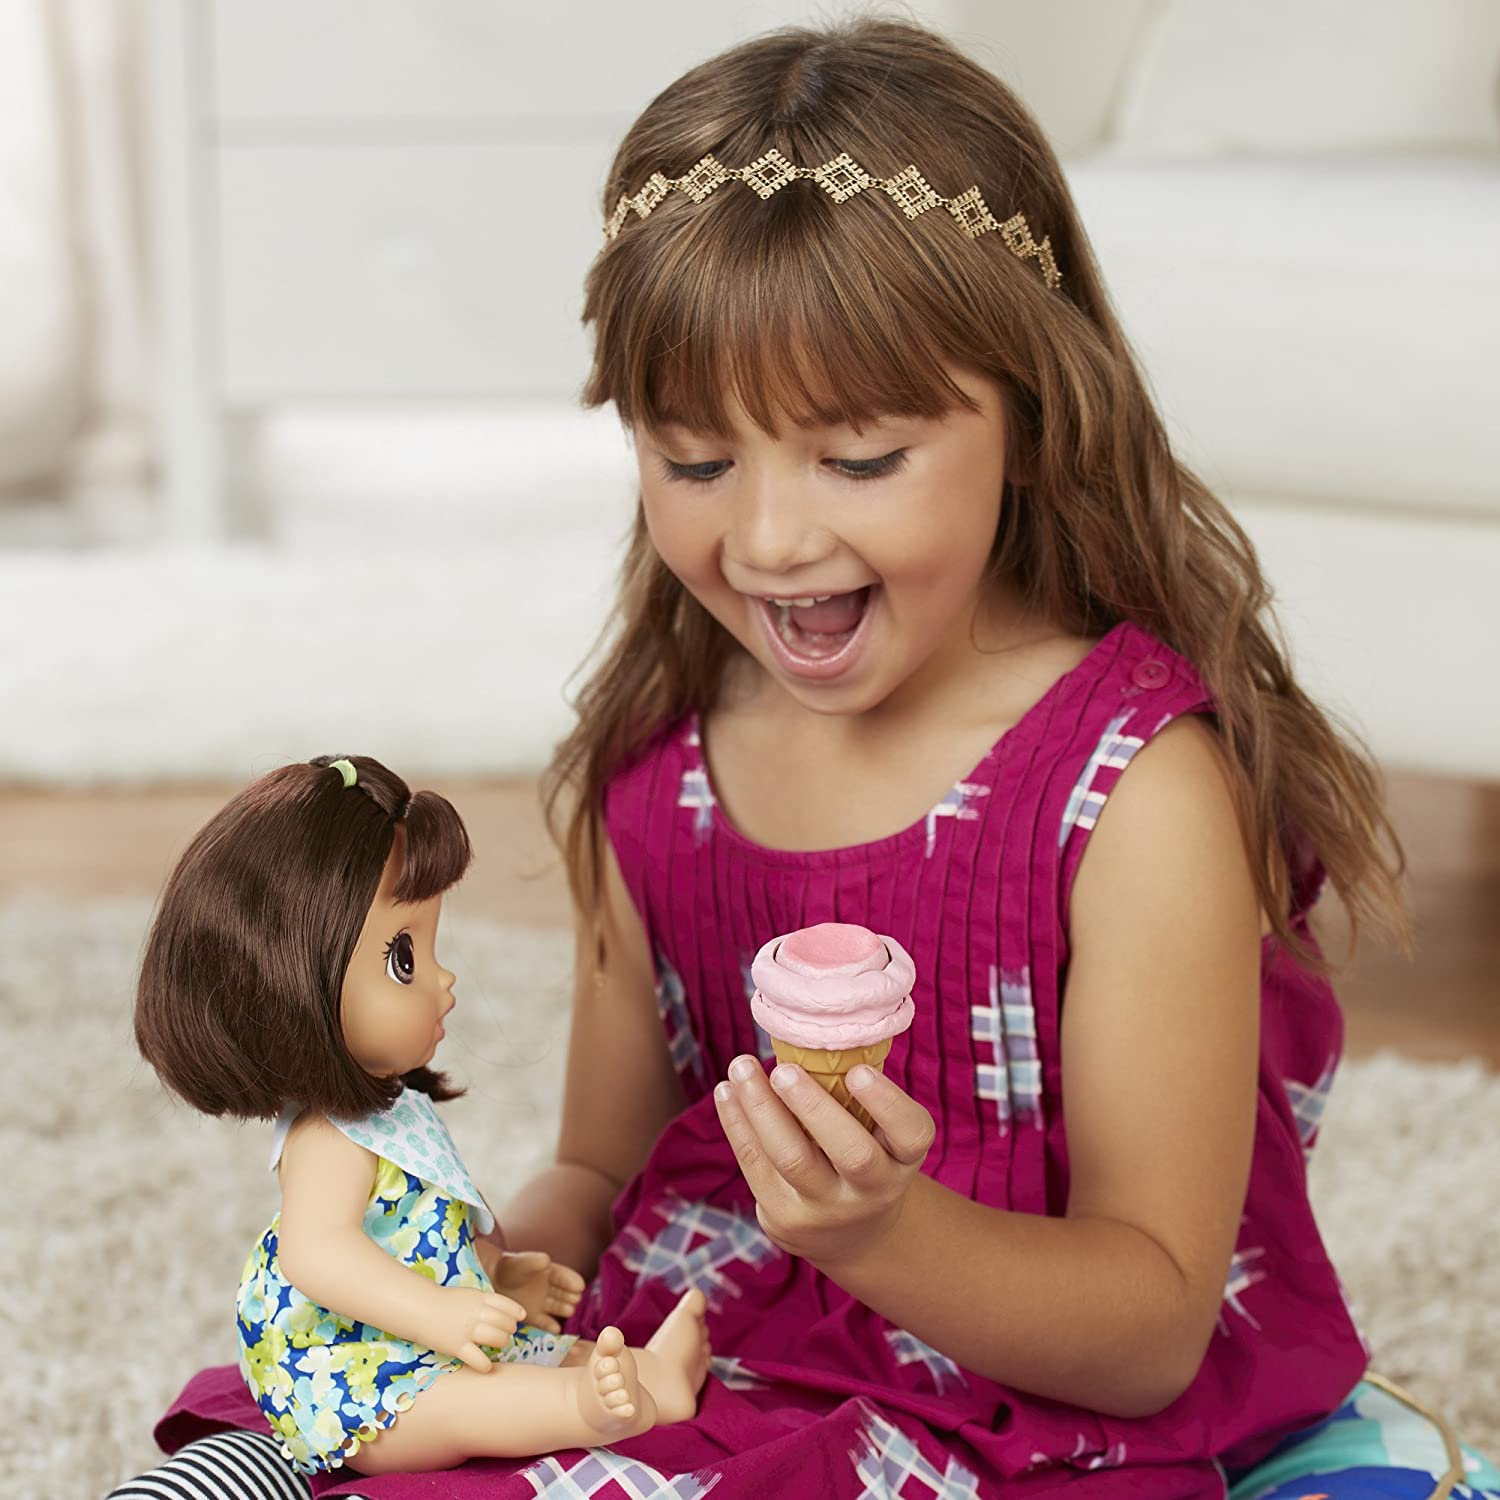 Perfect Toy For 3-Year-Old Girls and Boys and Up Hasbro C1089AF1 Comb and More Scooper BABY ALIVE MAGICAL SCOOPS BABY: Brunette Baby Doll with Dress and Accessories: Ice Cream Cone